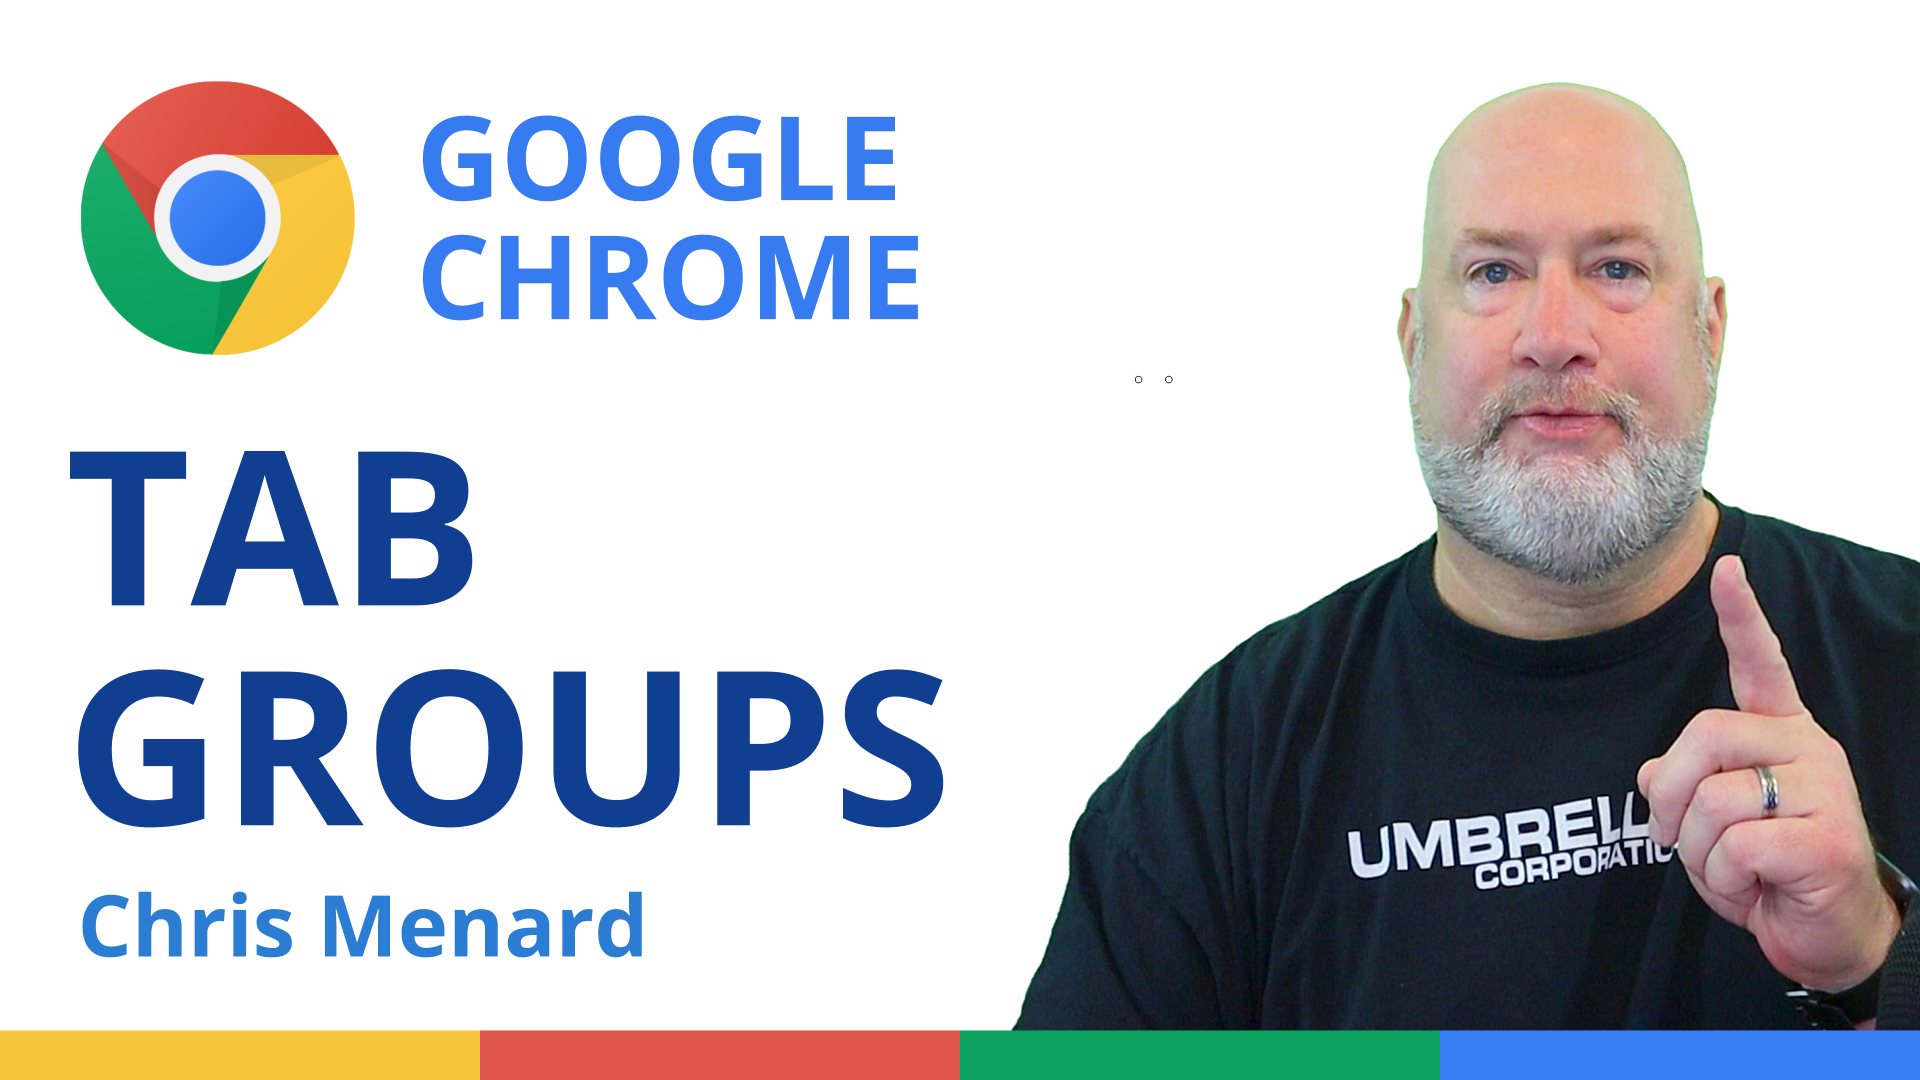 Use Tab Groups in Google Chrome to stay organized